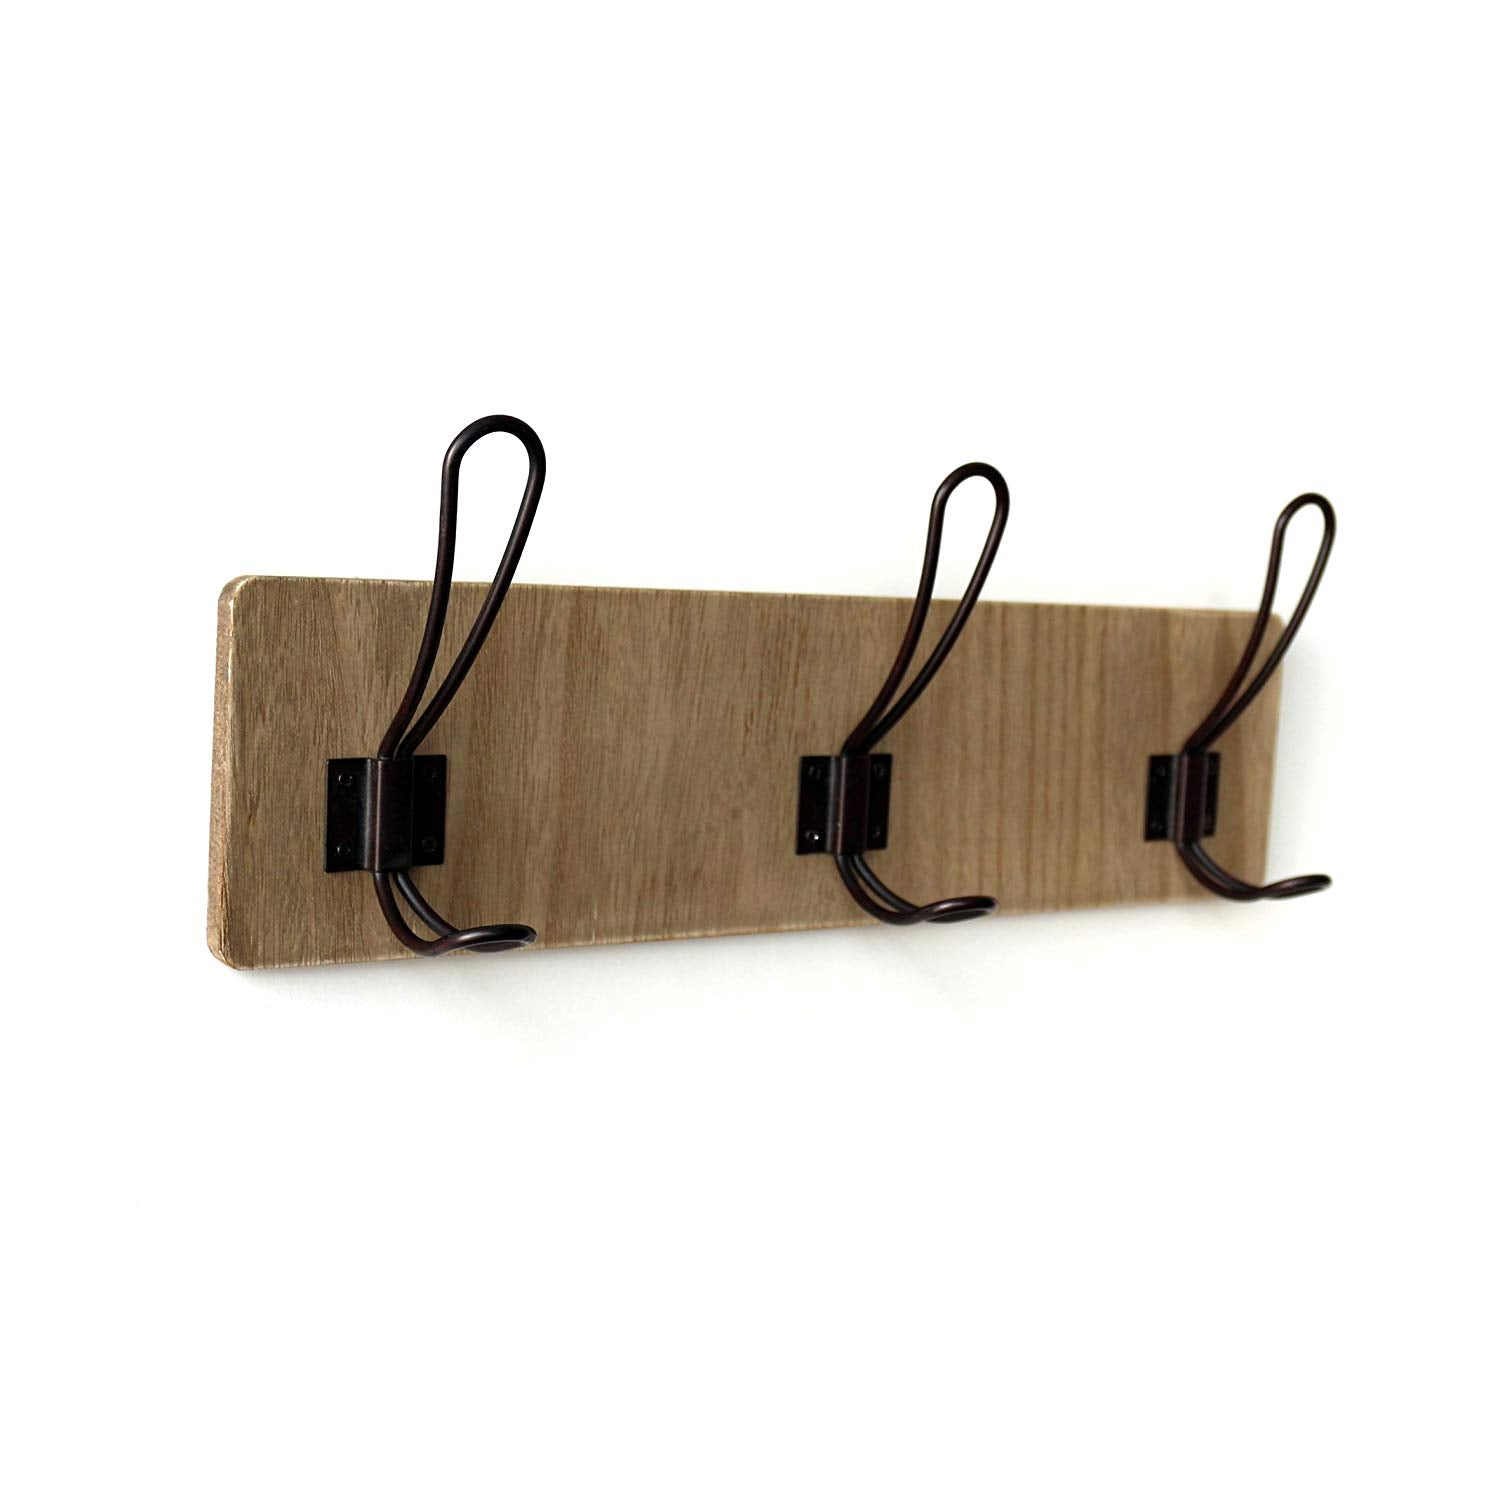 "CVHOMEDECO. Country Distressed Entryway Wooden Hook Wall Mount or Door Hanger Clothes Coat Hooks Towel Hat Scarf Bags Rack with Triple Metal Iron Hooks. Light Walnut Color, 15-3/4"" X 5-3/4"" X 3""D"